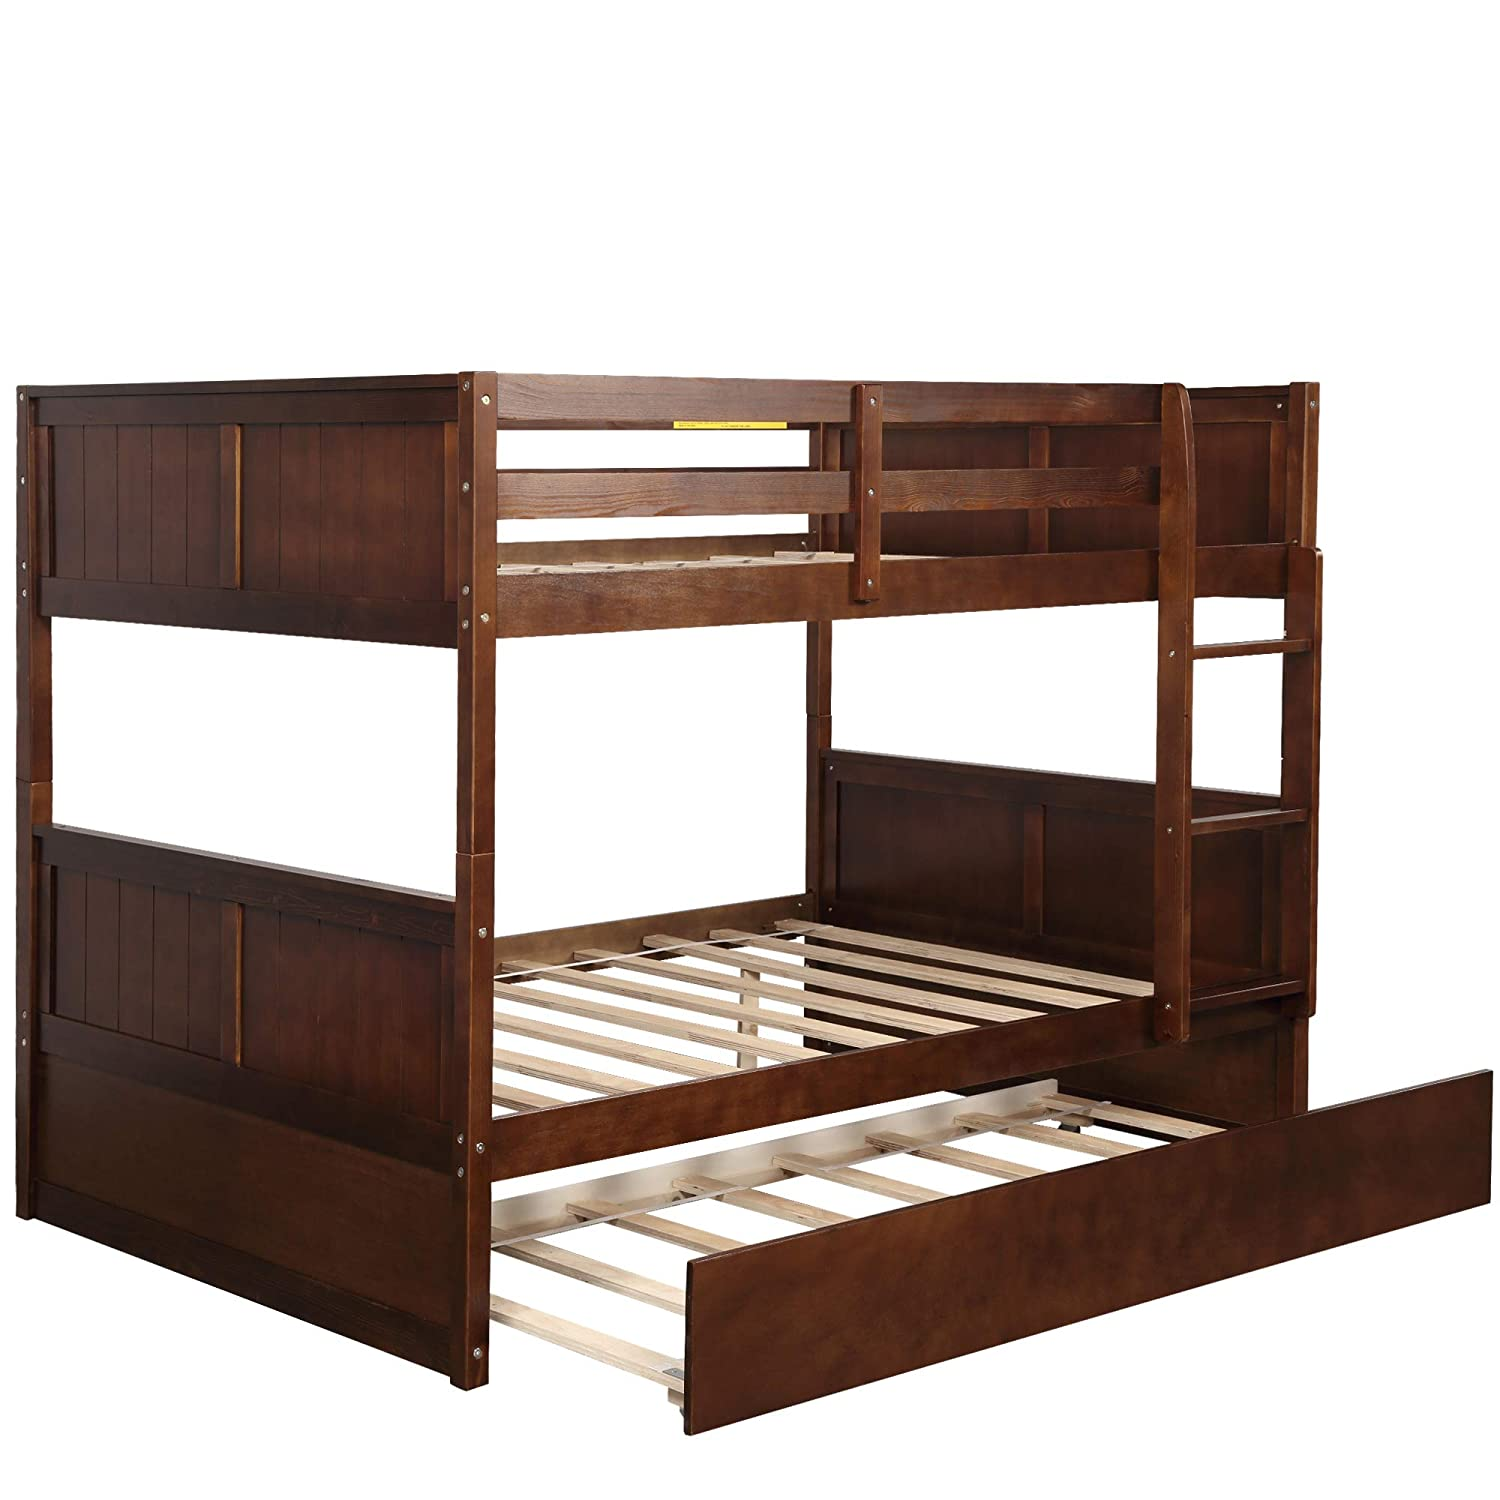 Full Over Full Bunk Bed with Trundle, WeYoung Solid Wood Bunk Bed Frame Convertible to Full Full Size with Rails and Ladder for Adults Walnut